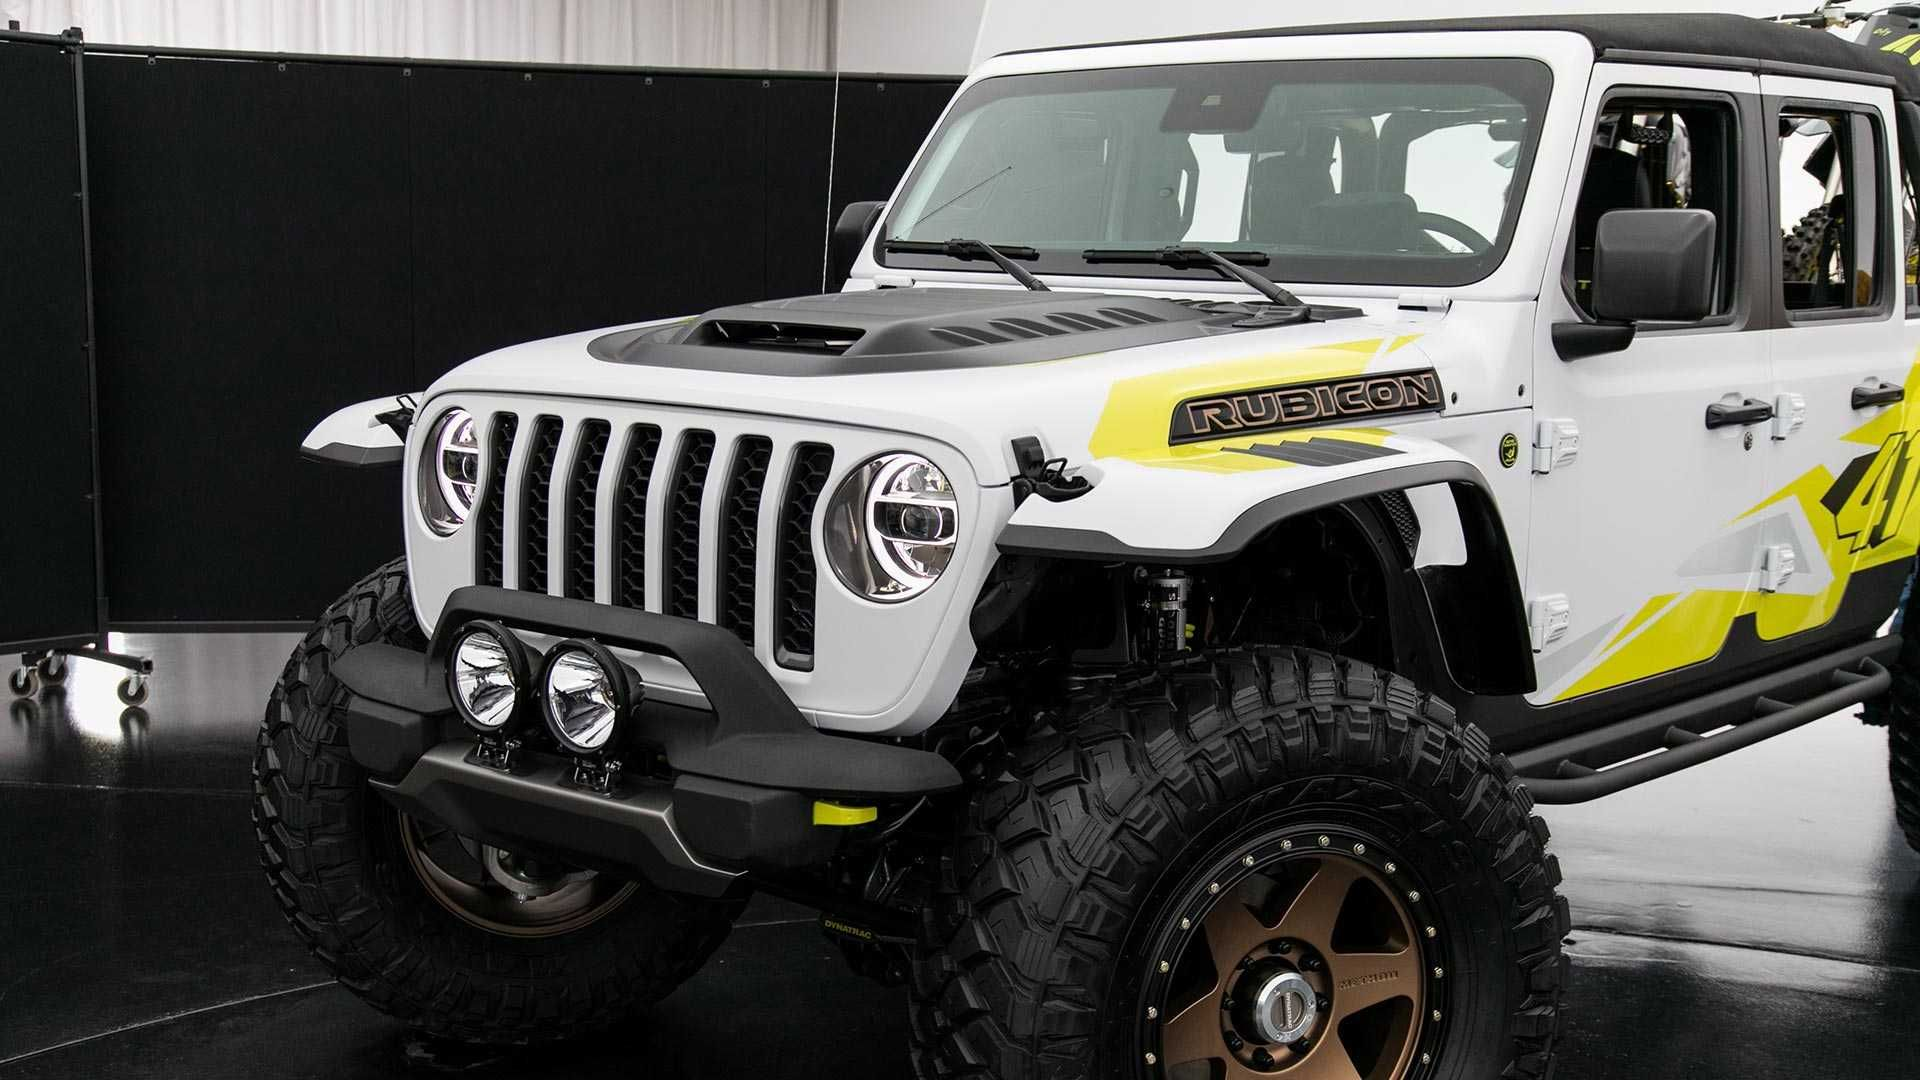 The Jeep Gladiator Flatbill Is A Purpose Built Dirt Bike Hauler With Modified Pieces That Facilitate Getting Your Bikes To An Jeep Gladiator Pickup Trucks Jeep